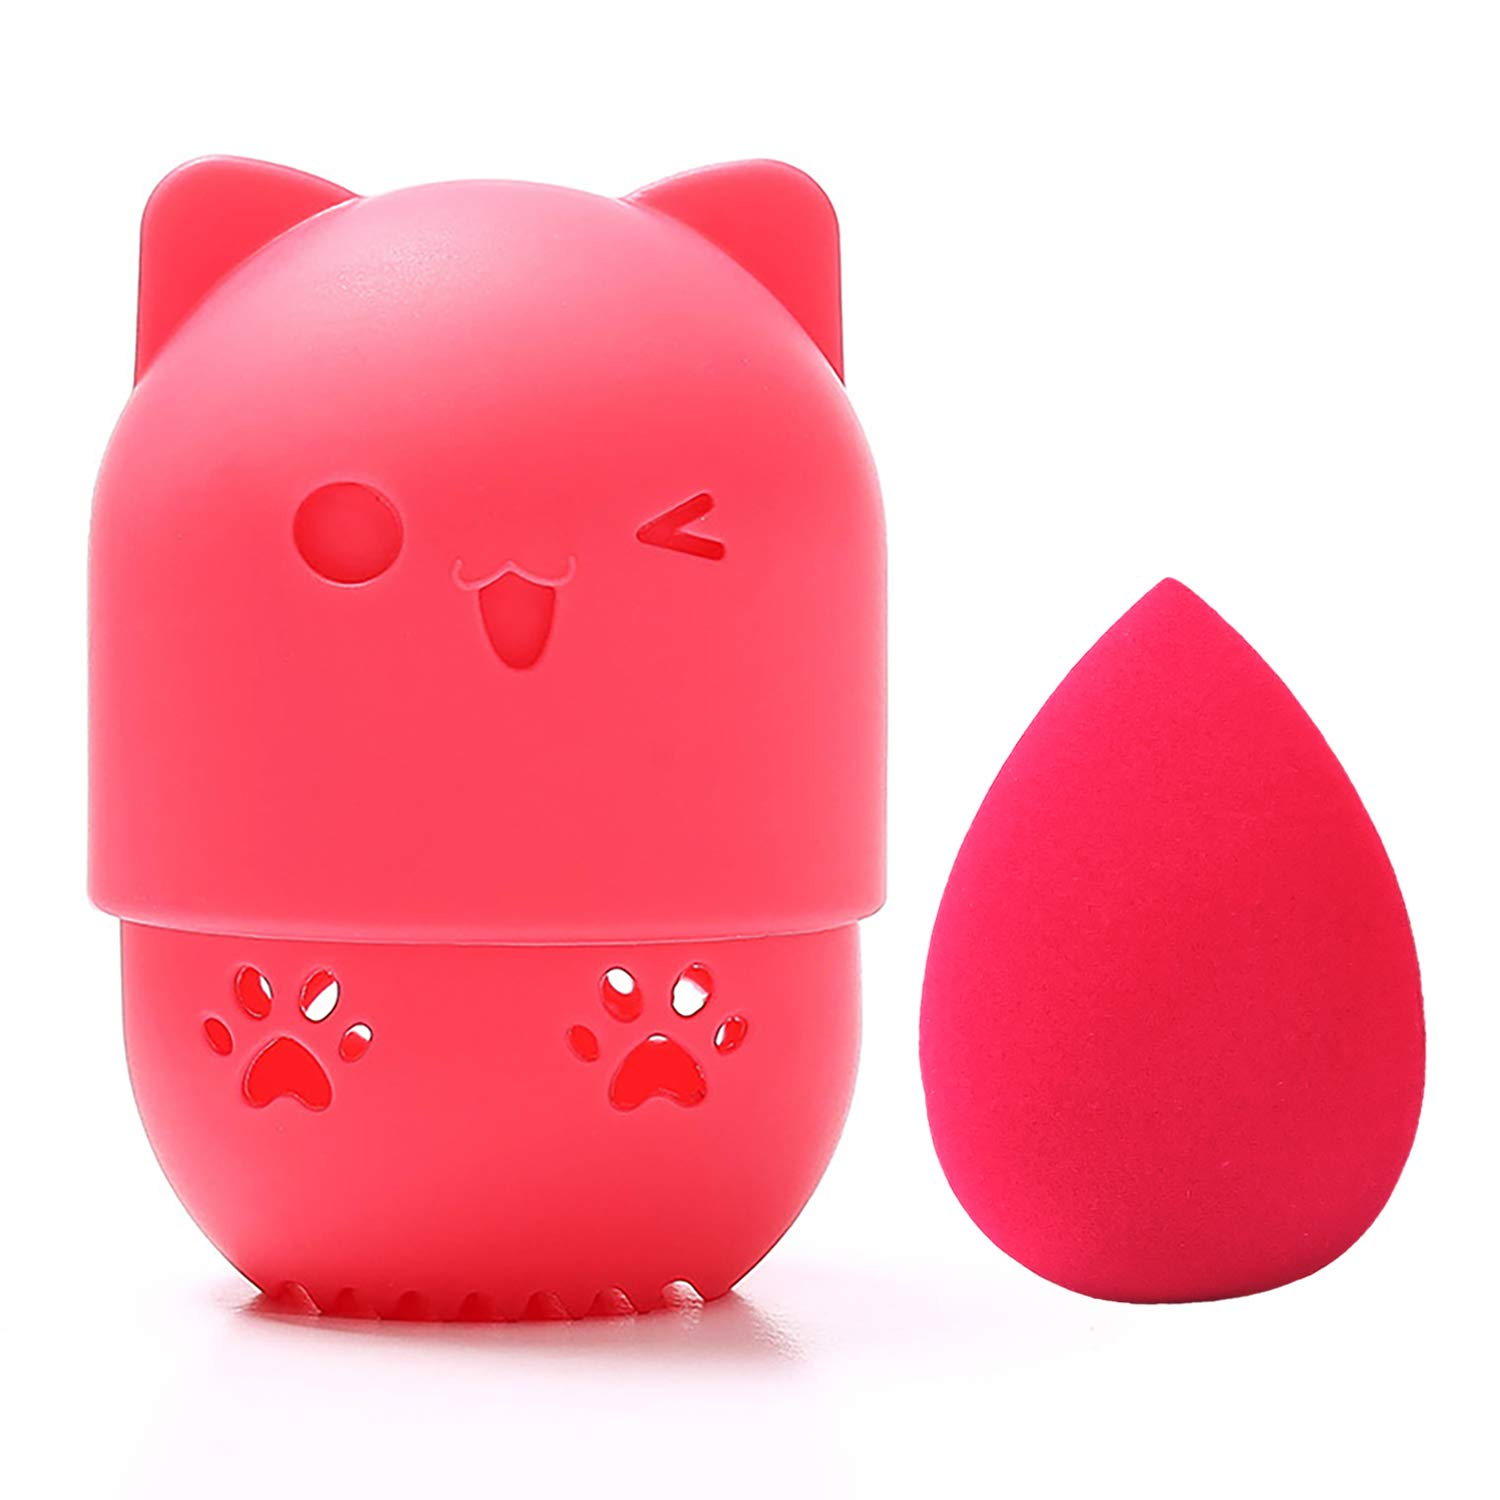 [Allure & Co.] Soft Makeup Sponge and Cute Cat Shaped Container Set - Travel Case for Beauty Blender (Red)